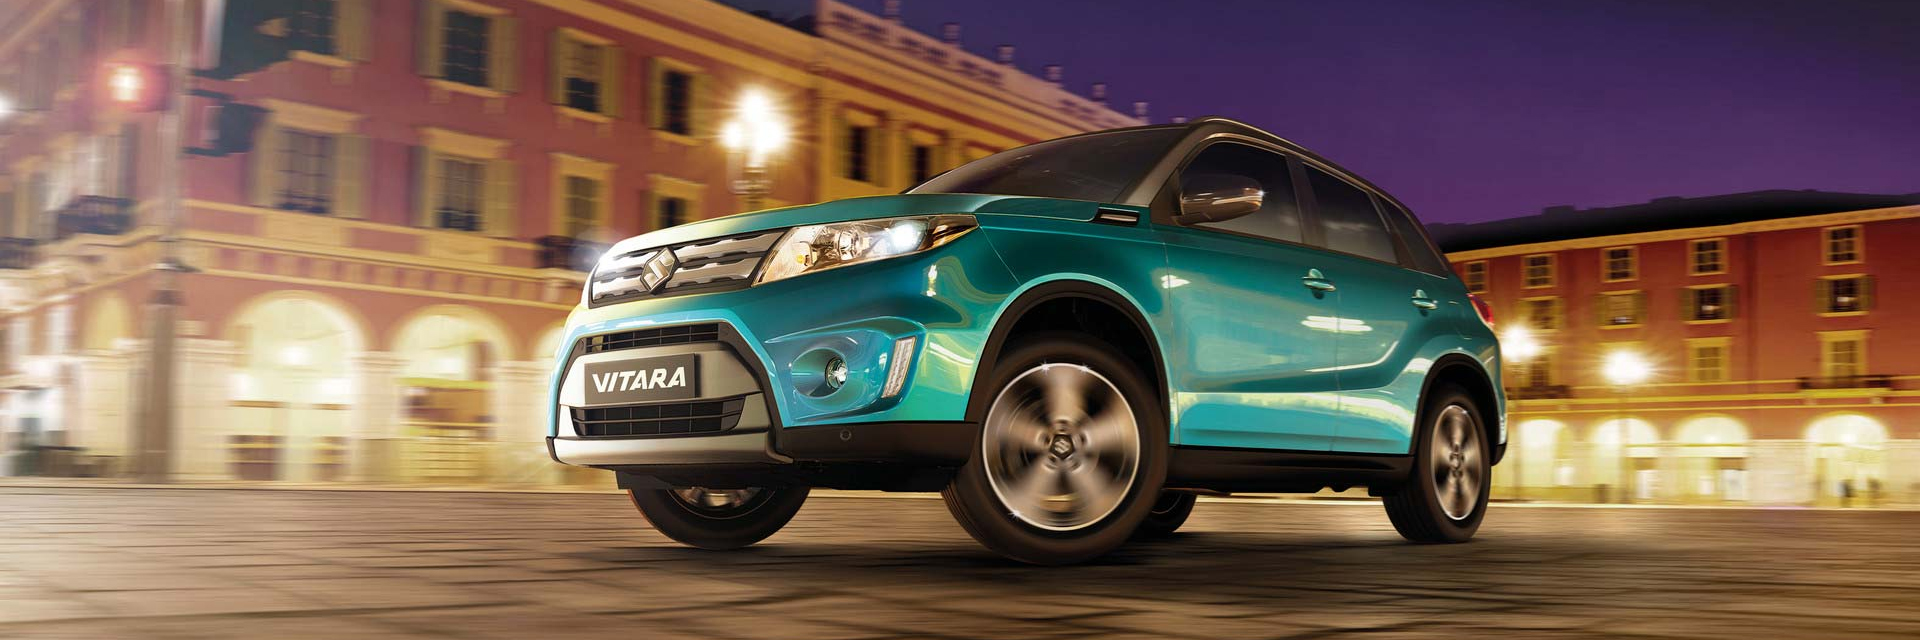 Vitara Re-designed style for a modern design that will turn heads